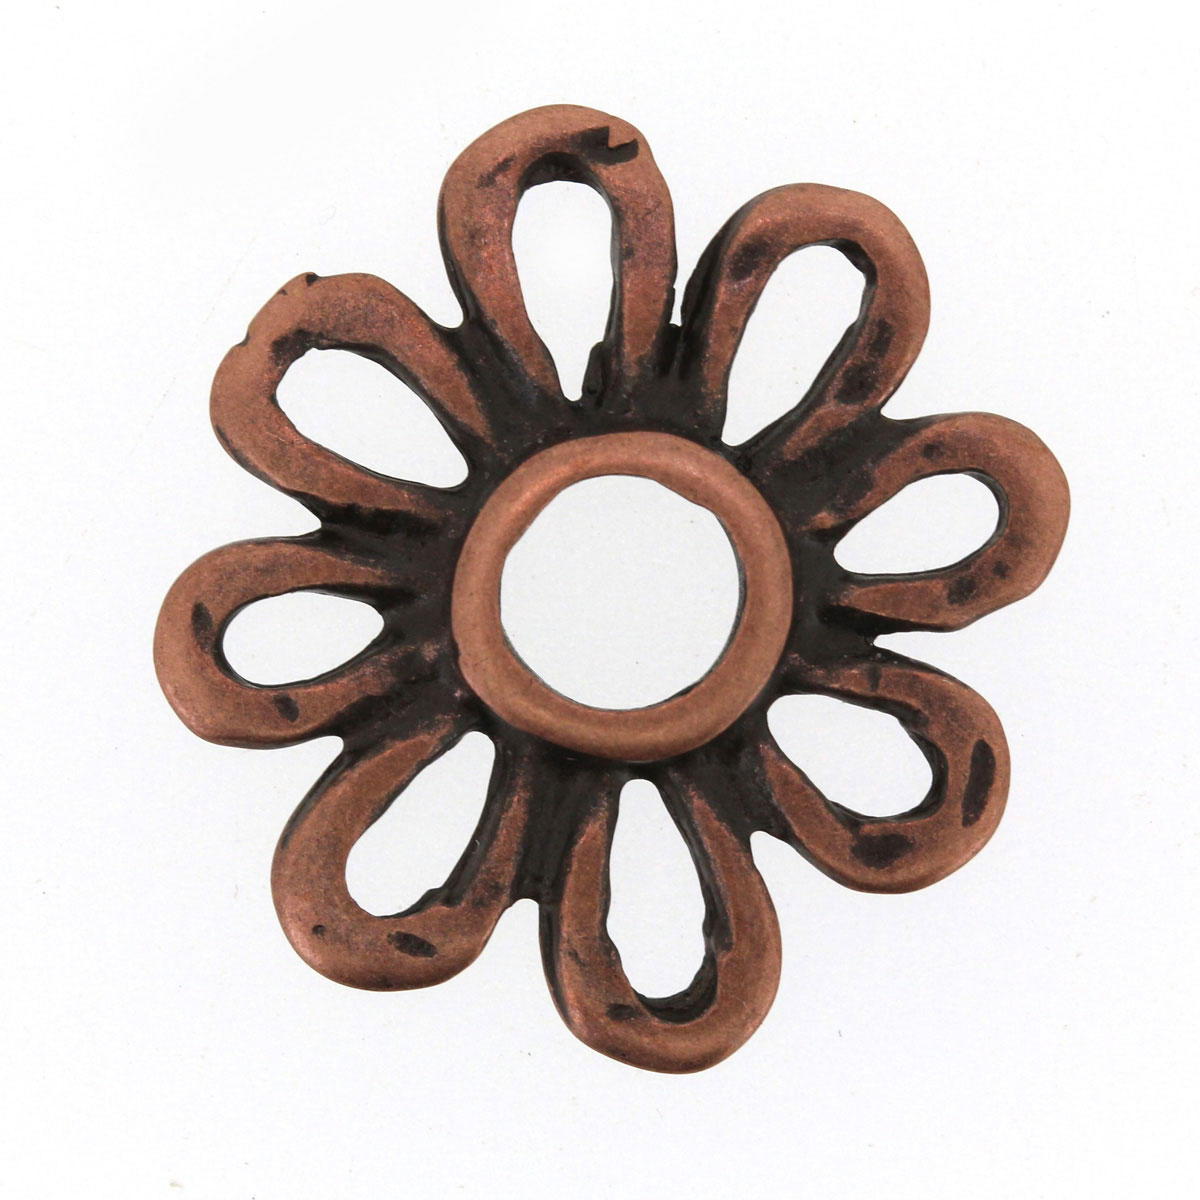 Antique Copper Charms